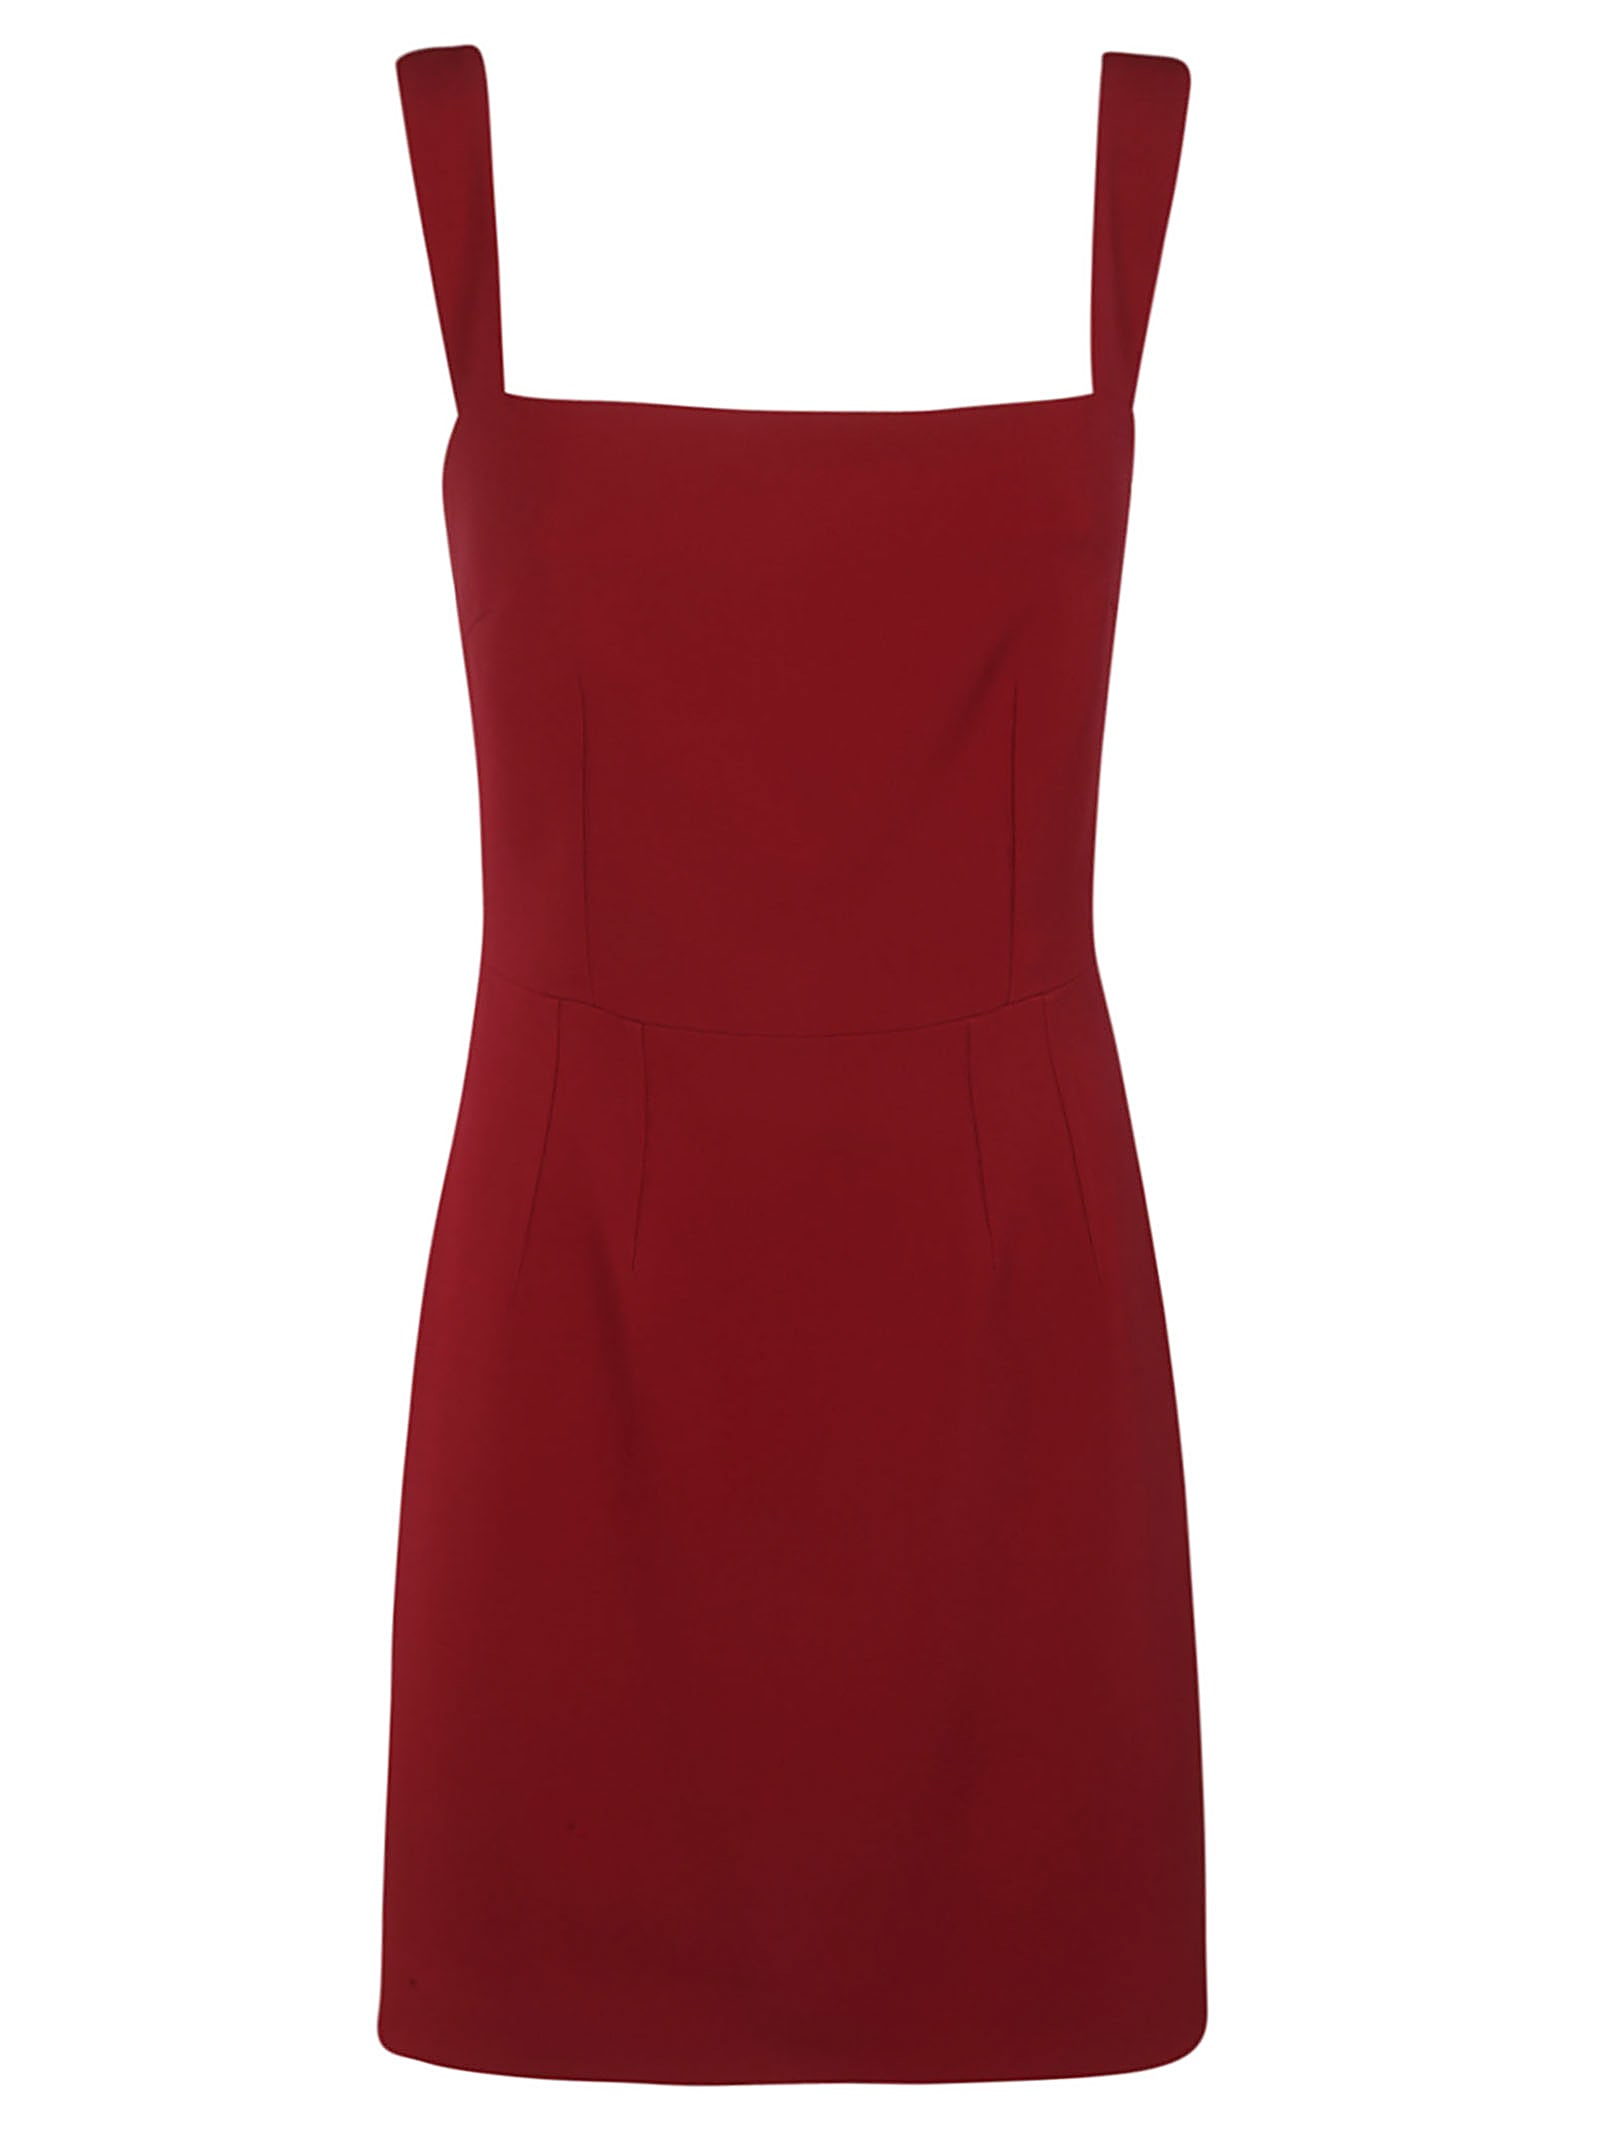 Buy Dolce & Gabbana Square Neck Dress online, shop Dolce & Gabbana with free shipping